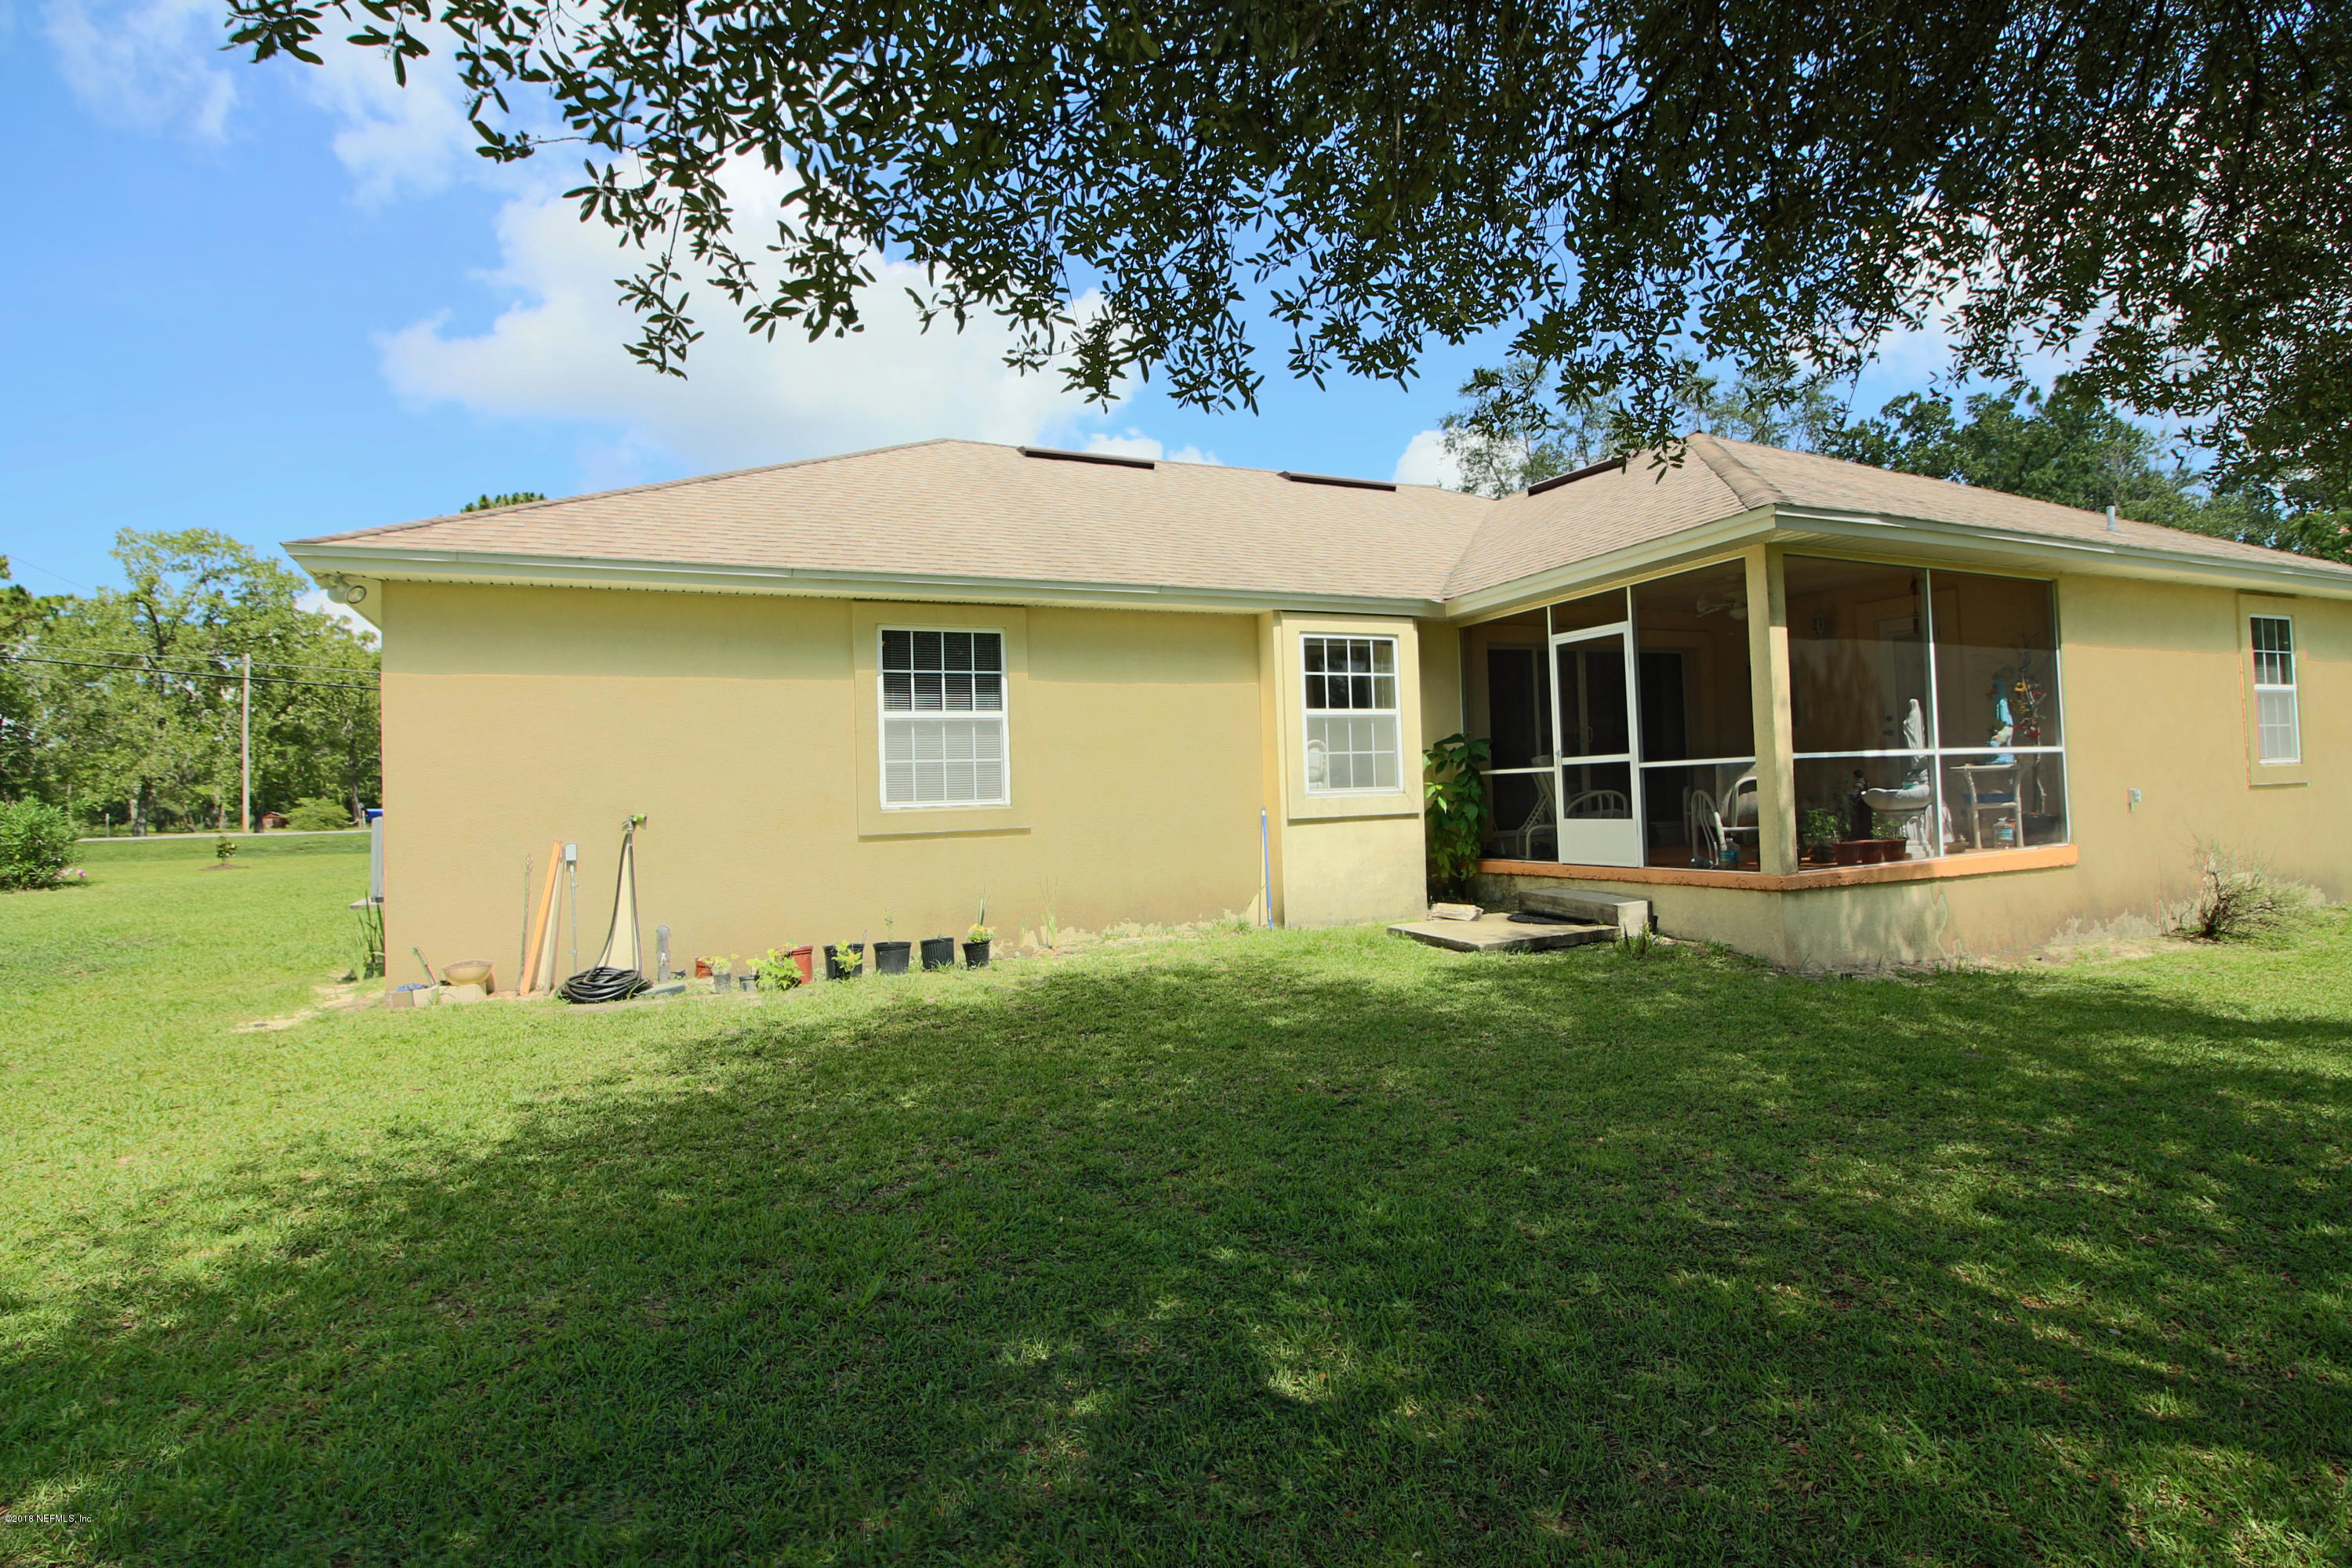 7665 SILVER SANDS, KEYSTONE HEIGHTS, FLORIDA 32656, 4 Bedrooms Bedrooms, ,3 BathroomsBathrooms,Residential - single family,For sale,SILVER SANDS,943236